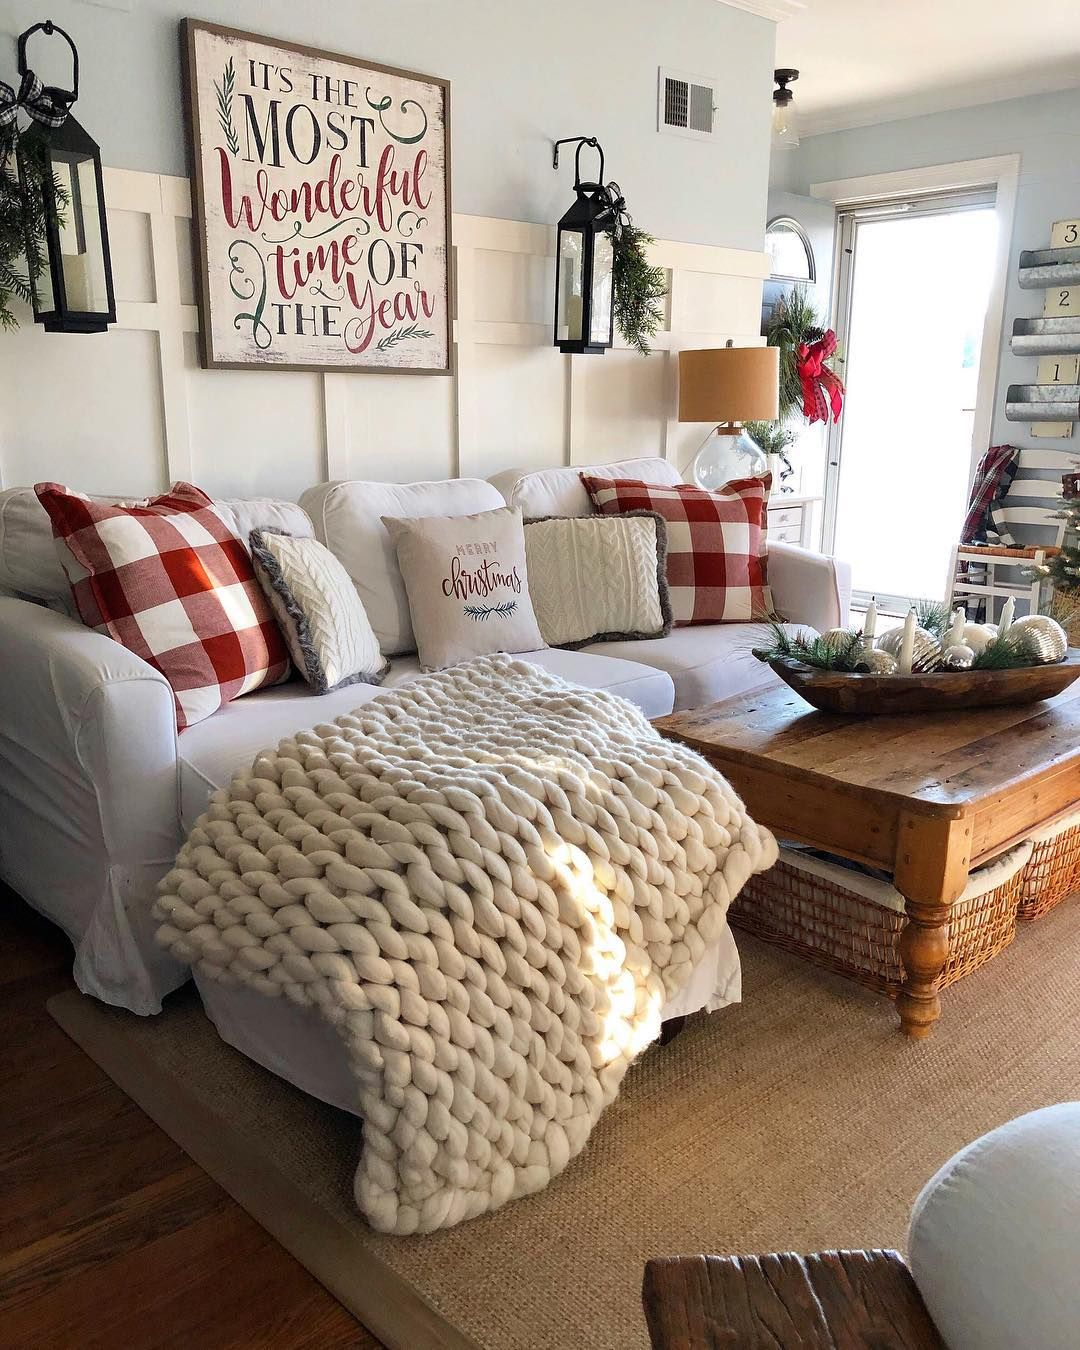 Jenny on instagram  chello friends as per usual in the midwest sunnier also rustic chic living room decoration ideas rh pinterest